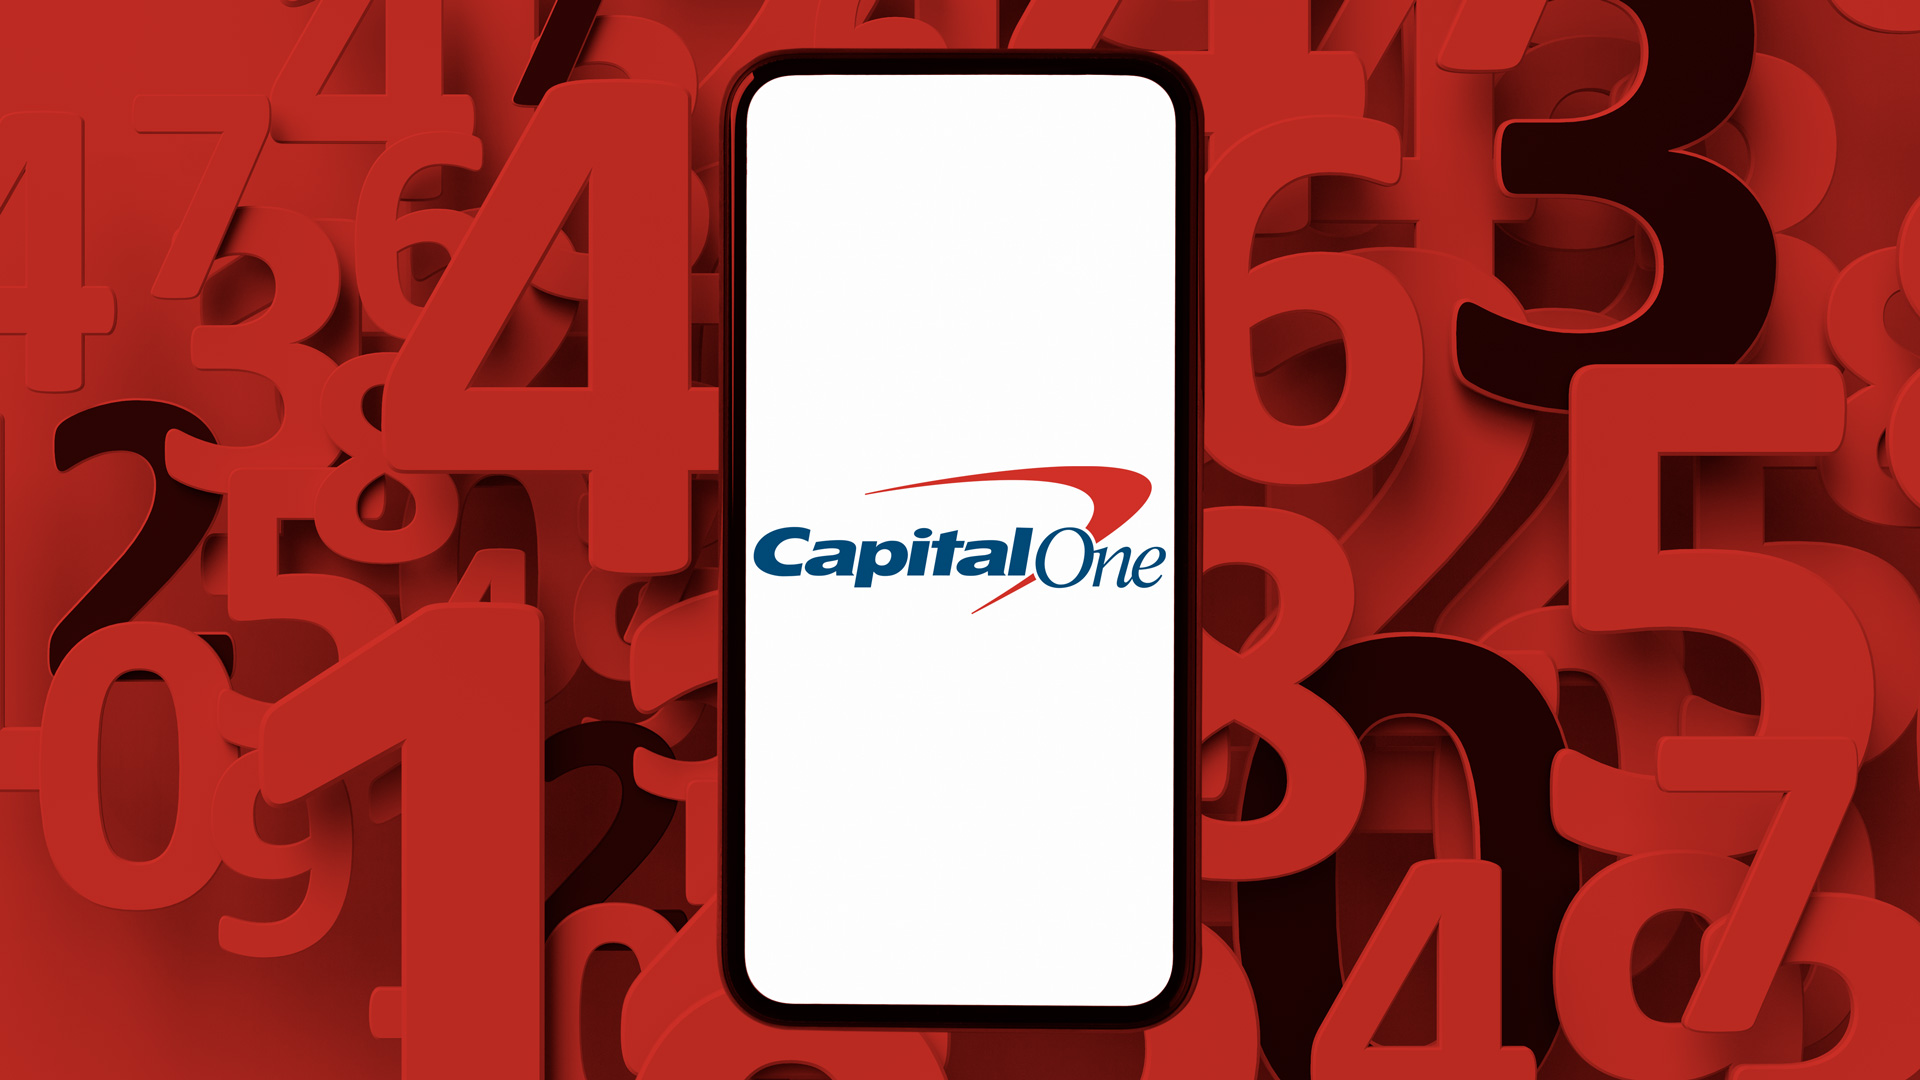 Here S Your Capital One Routing Number Gobankingrates